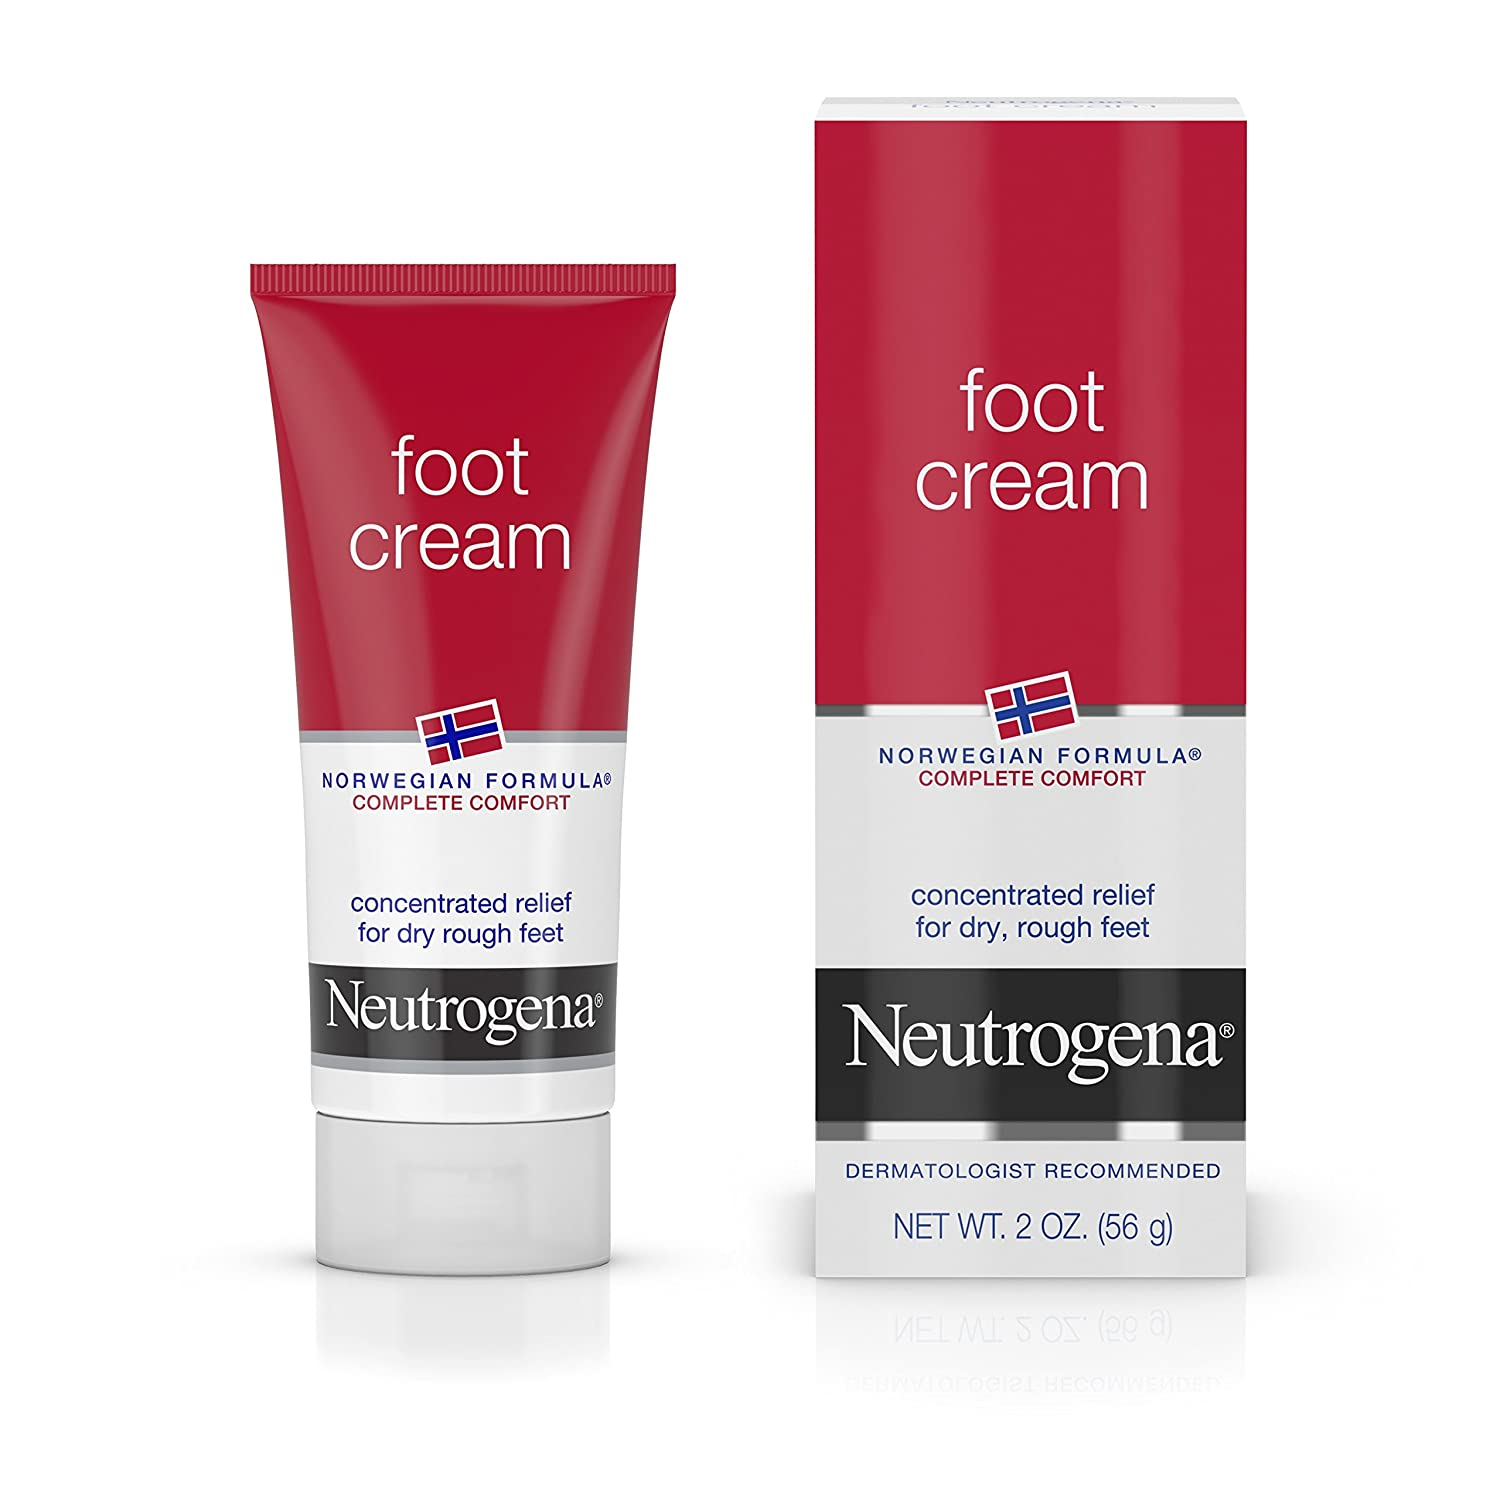 Neutrogena Norwegian Formula Moisturizing Foot Cream, 2 Oz. (Pack of 6) 070501240007